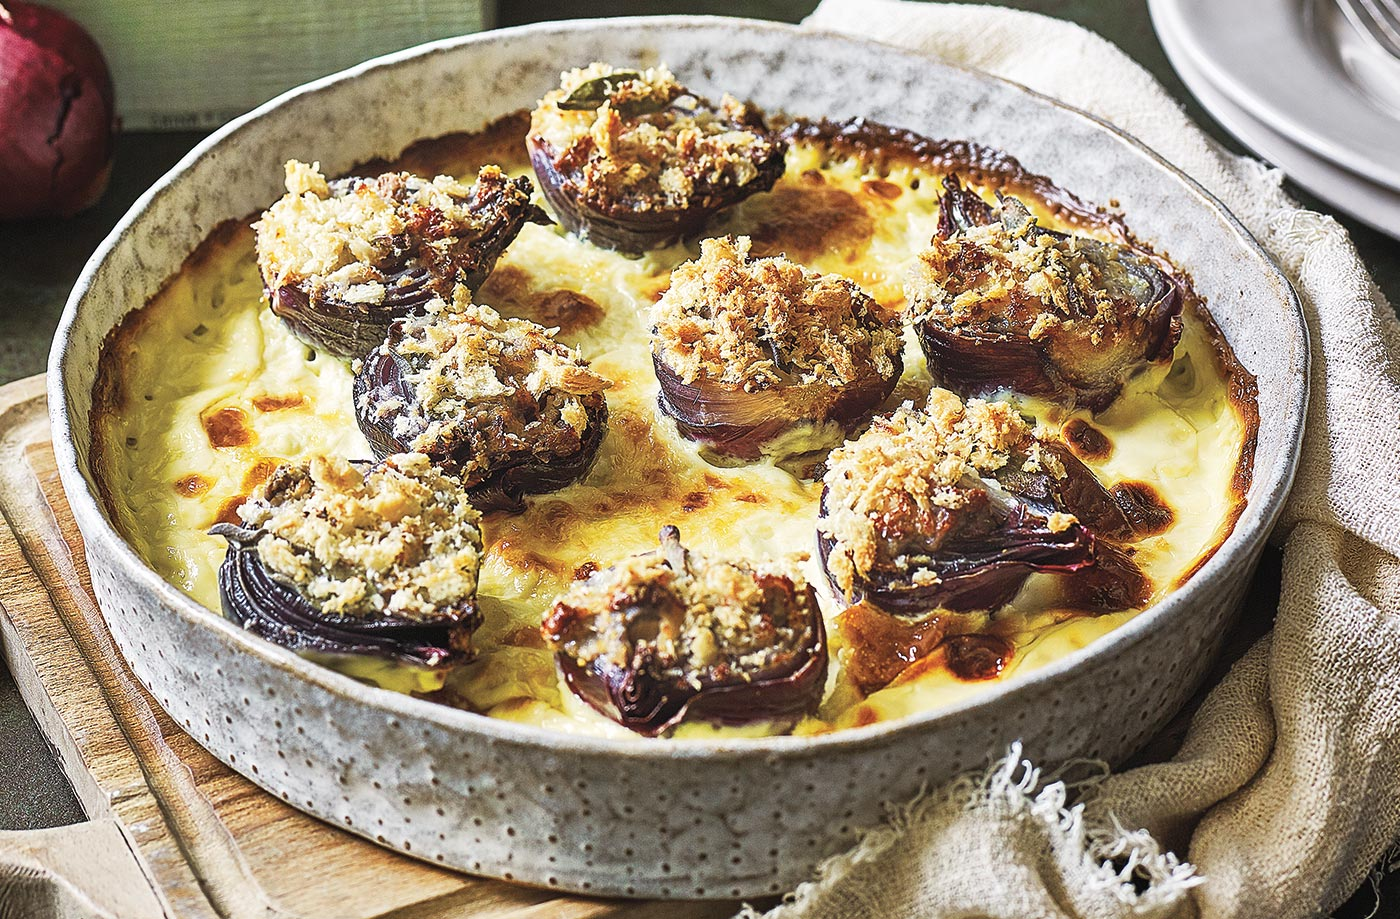 Baked onions with cream, garlic and anchovies recipe